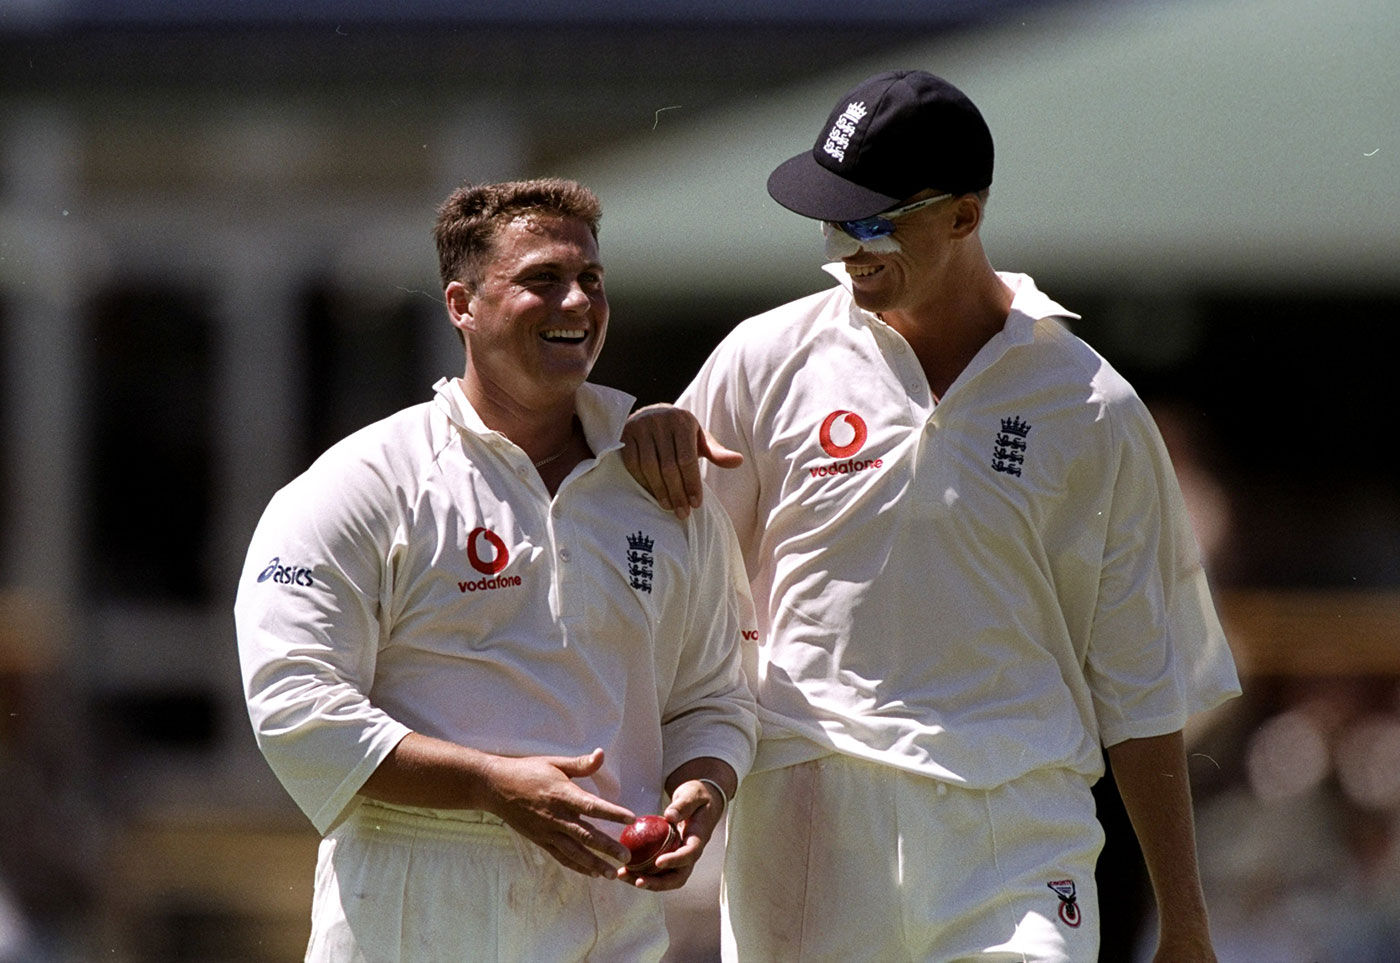 With his old mucker Darren Gough in the Perth Test of 1998